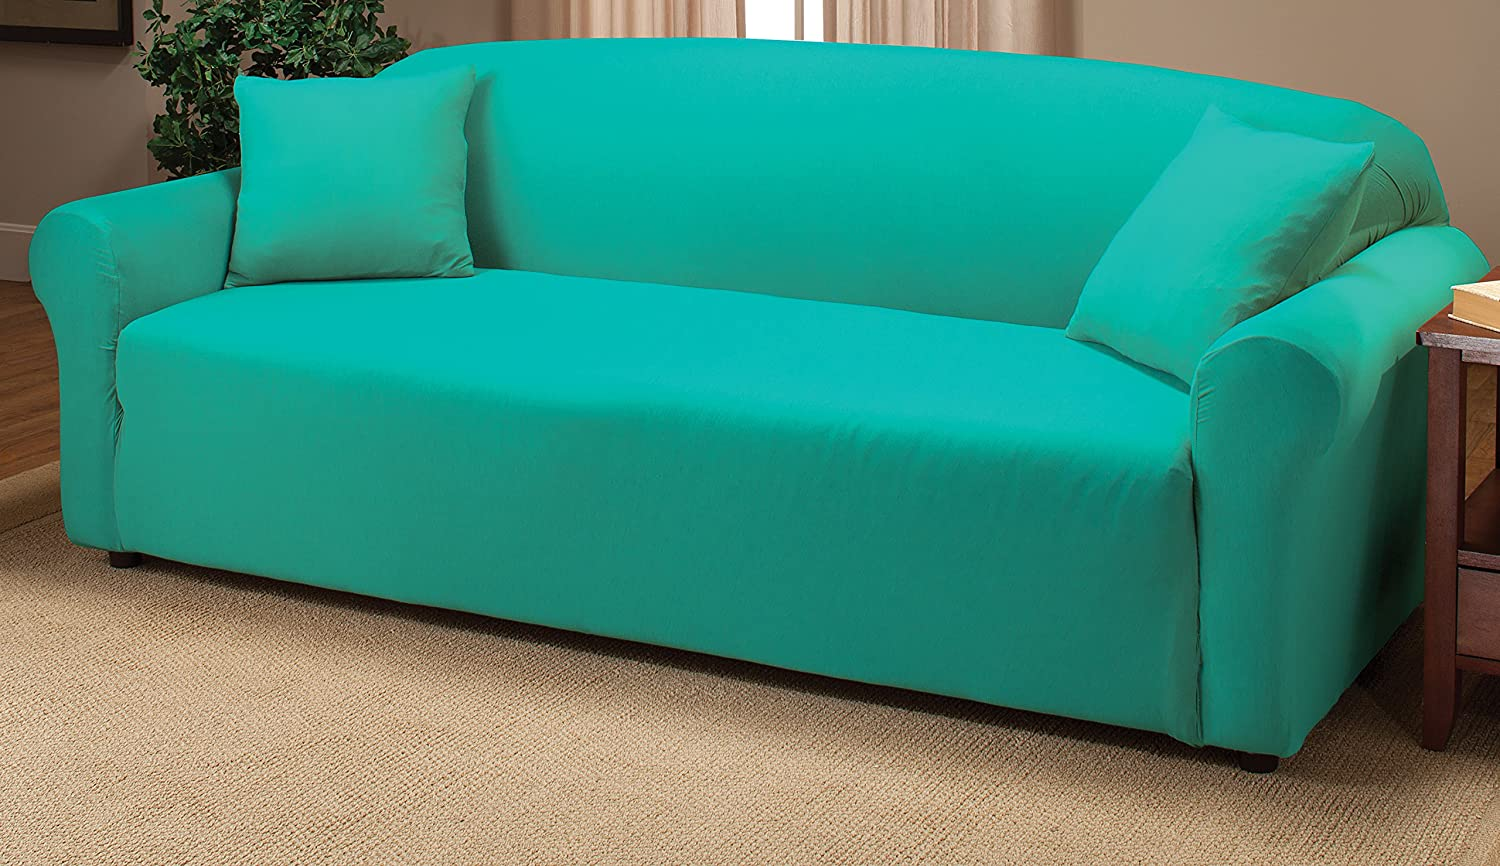 Teal colored sofa cover Blue loveseat slipcover